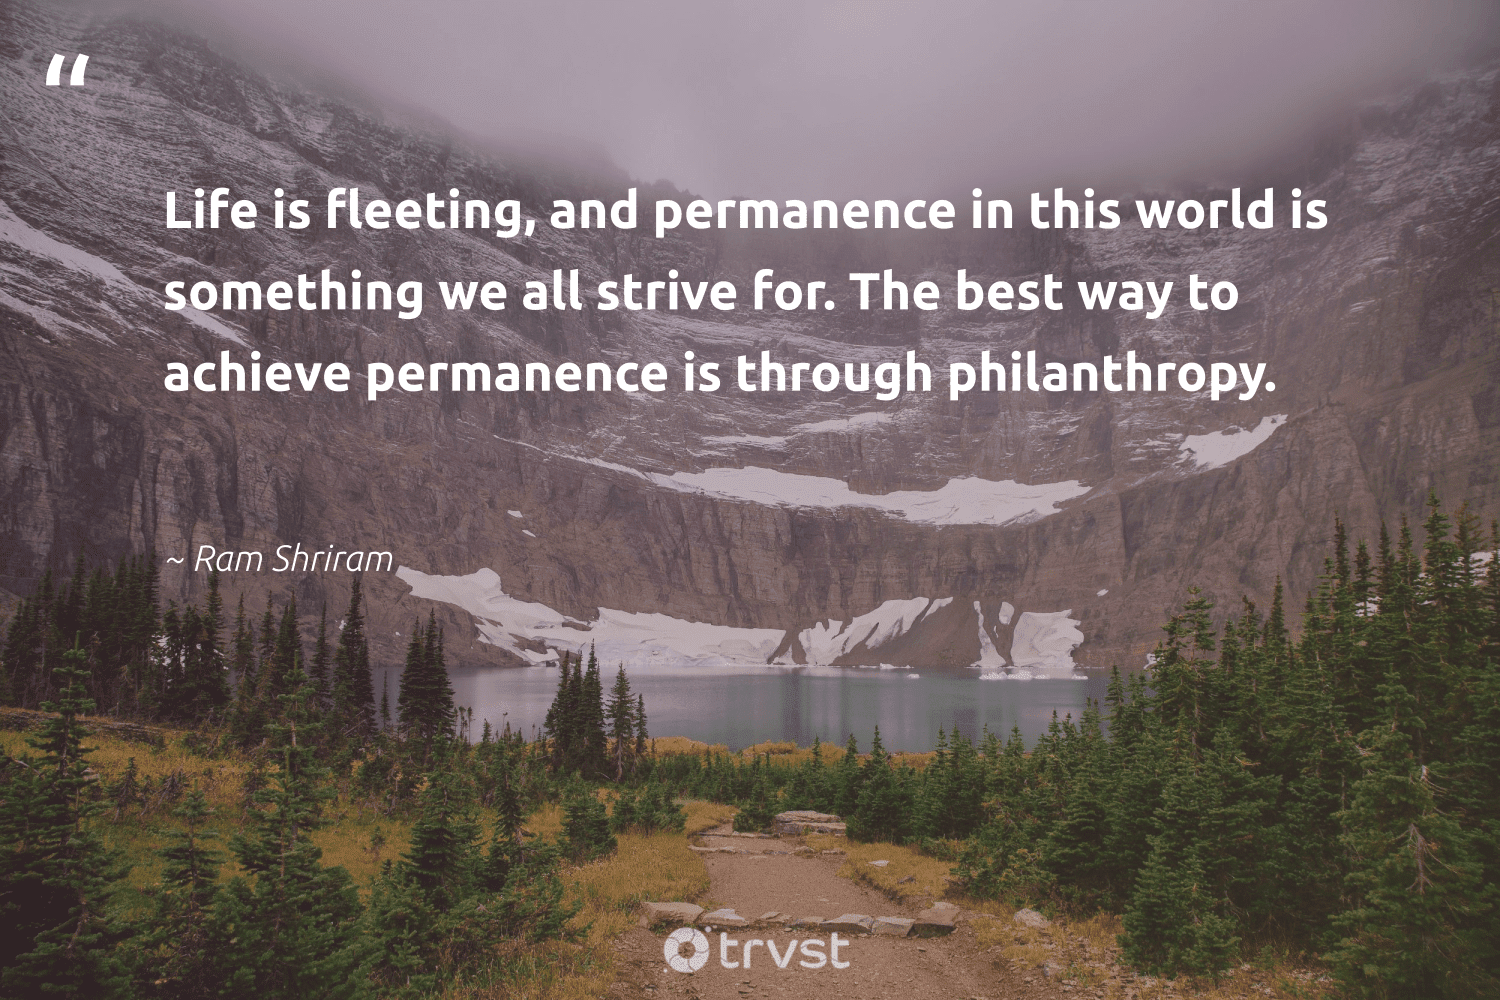 """""""Life is fleeting, and permanence in this world is something we all strive for. The best way to achieve permanence is through philanthropy.""""  - Ram Shriram #trvst #quotes #philanthropy #philanthropic #togetherwecan #giveforthefuture #collectiveaction #changemakers #itscooltobekind #dotherightthing #planetearthfirst #beinspired"""